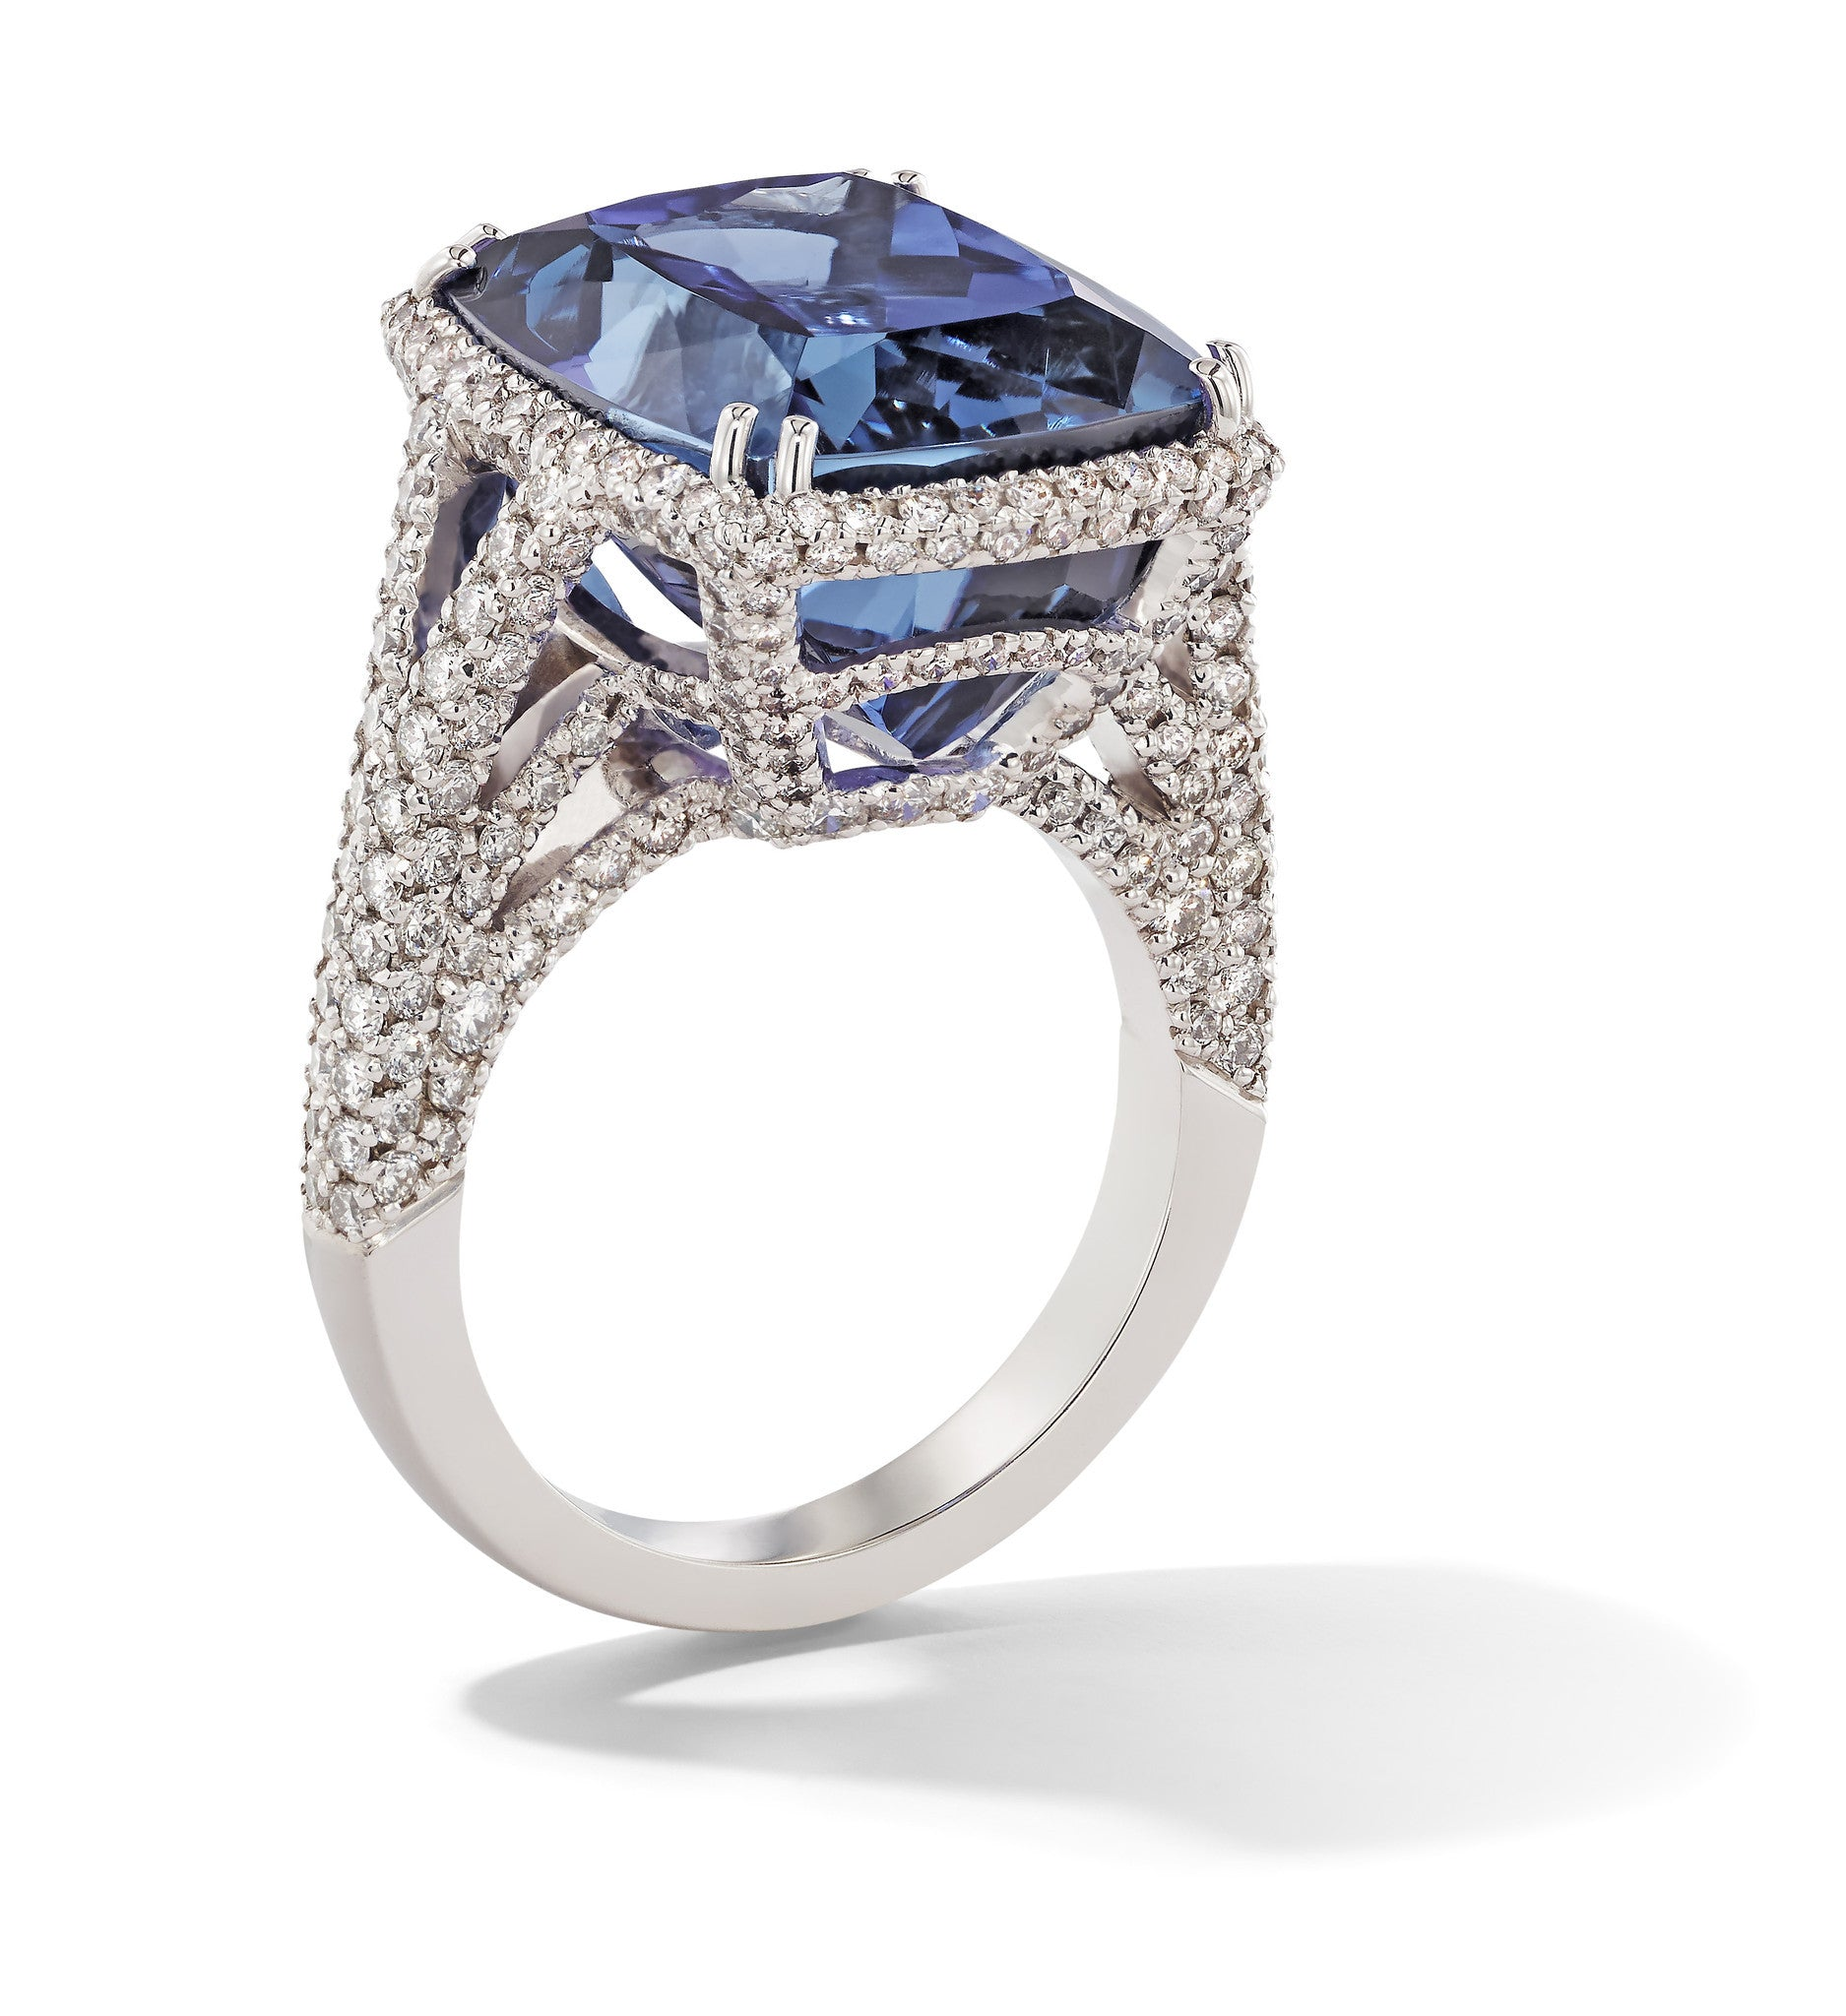 Hans D. Kreiger 18ct White Gold 17.93ct Tanzanite 1.85ct Diamond Emerald Cut Ring